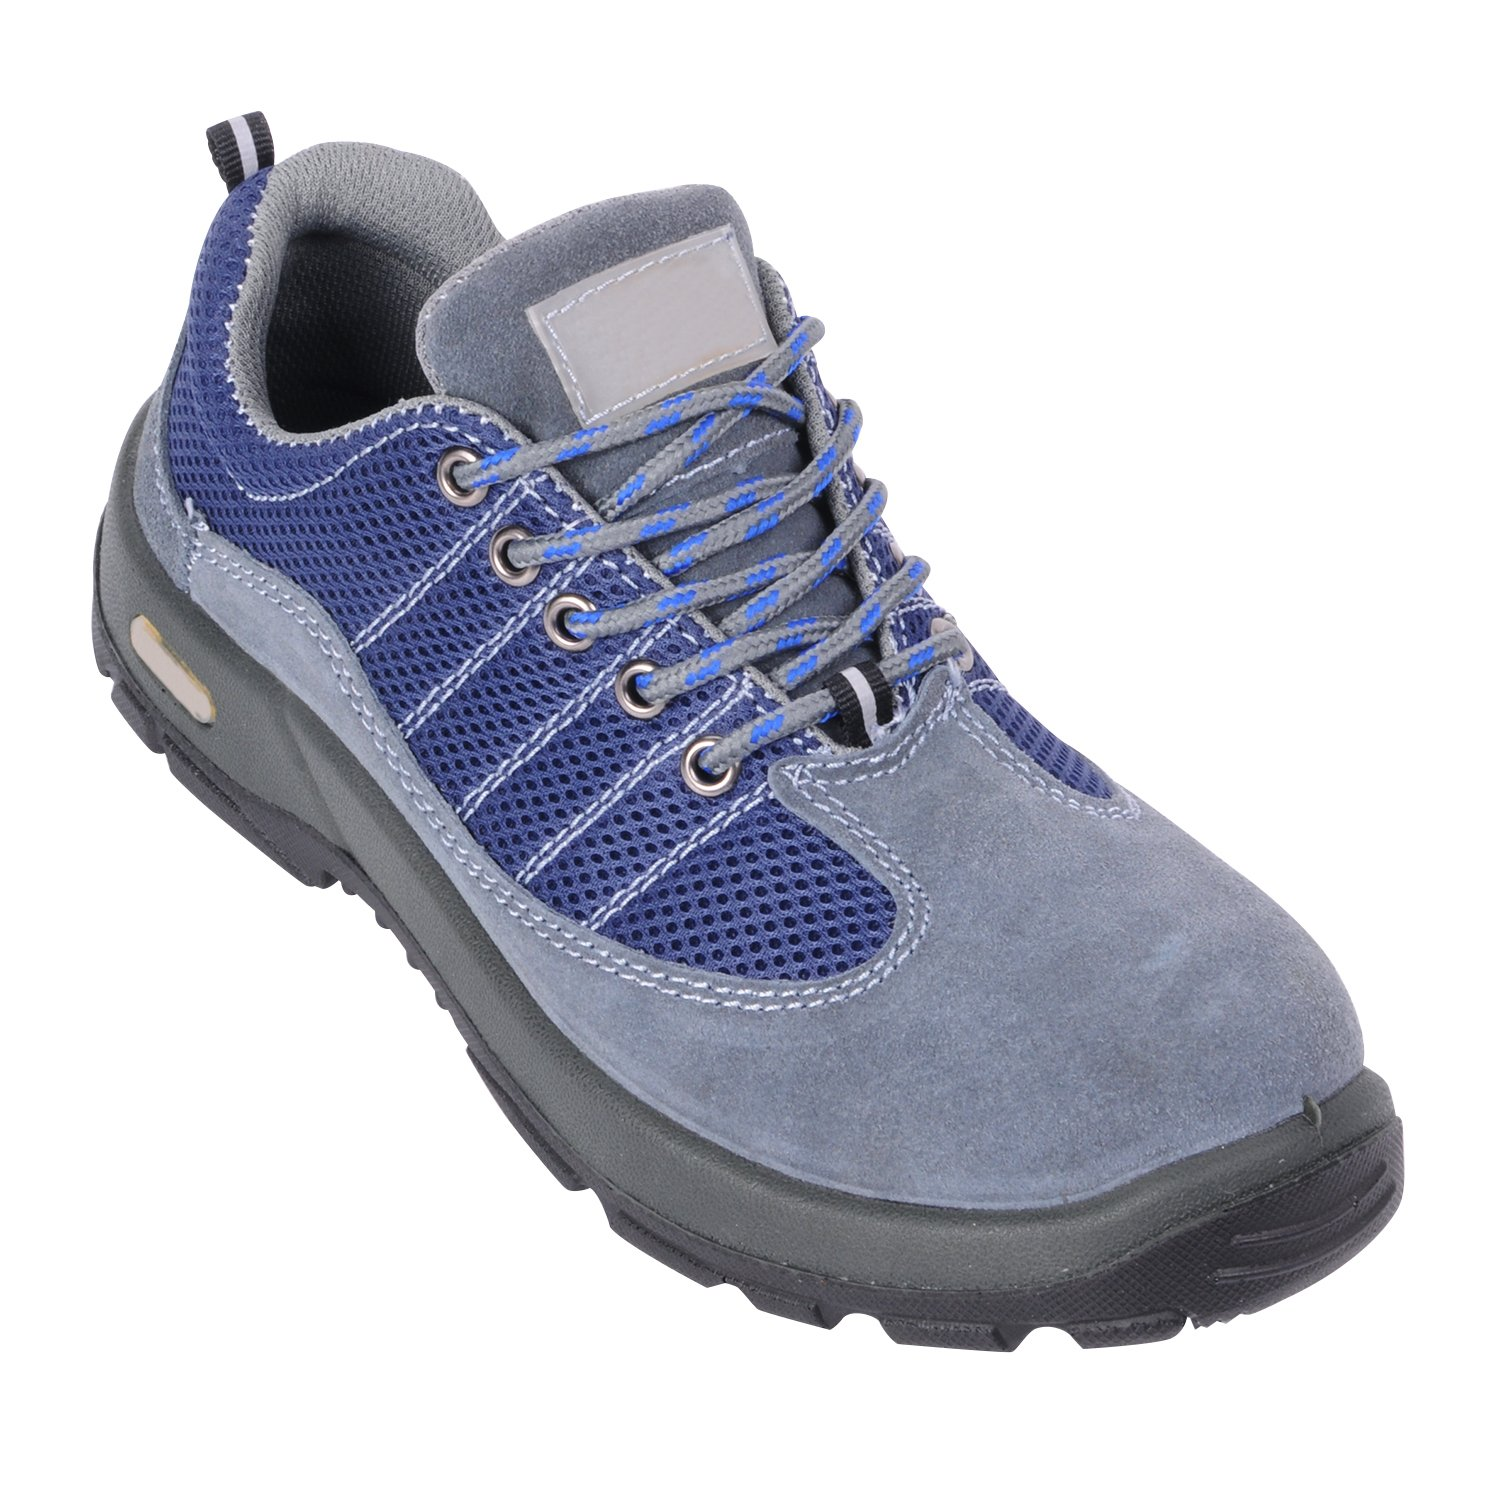 Optimal Product Men's Safety Shoes Work Shoes Comp Steel Toe Gray EU42 US8.5